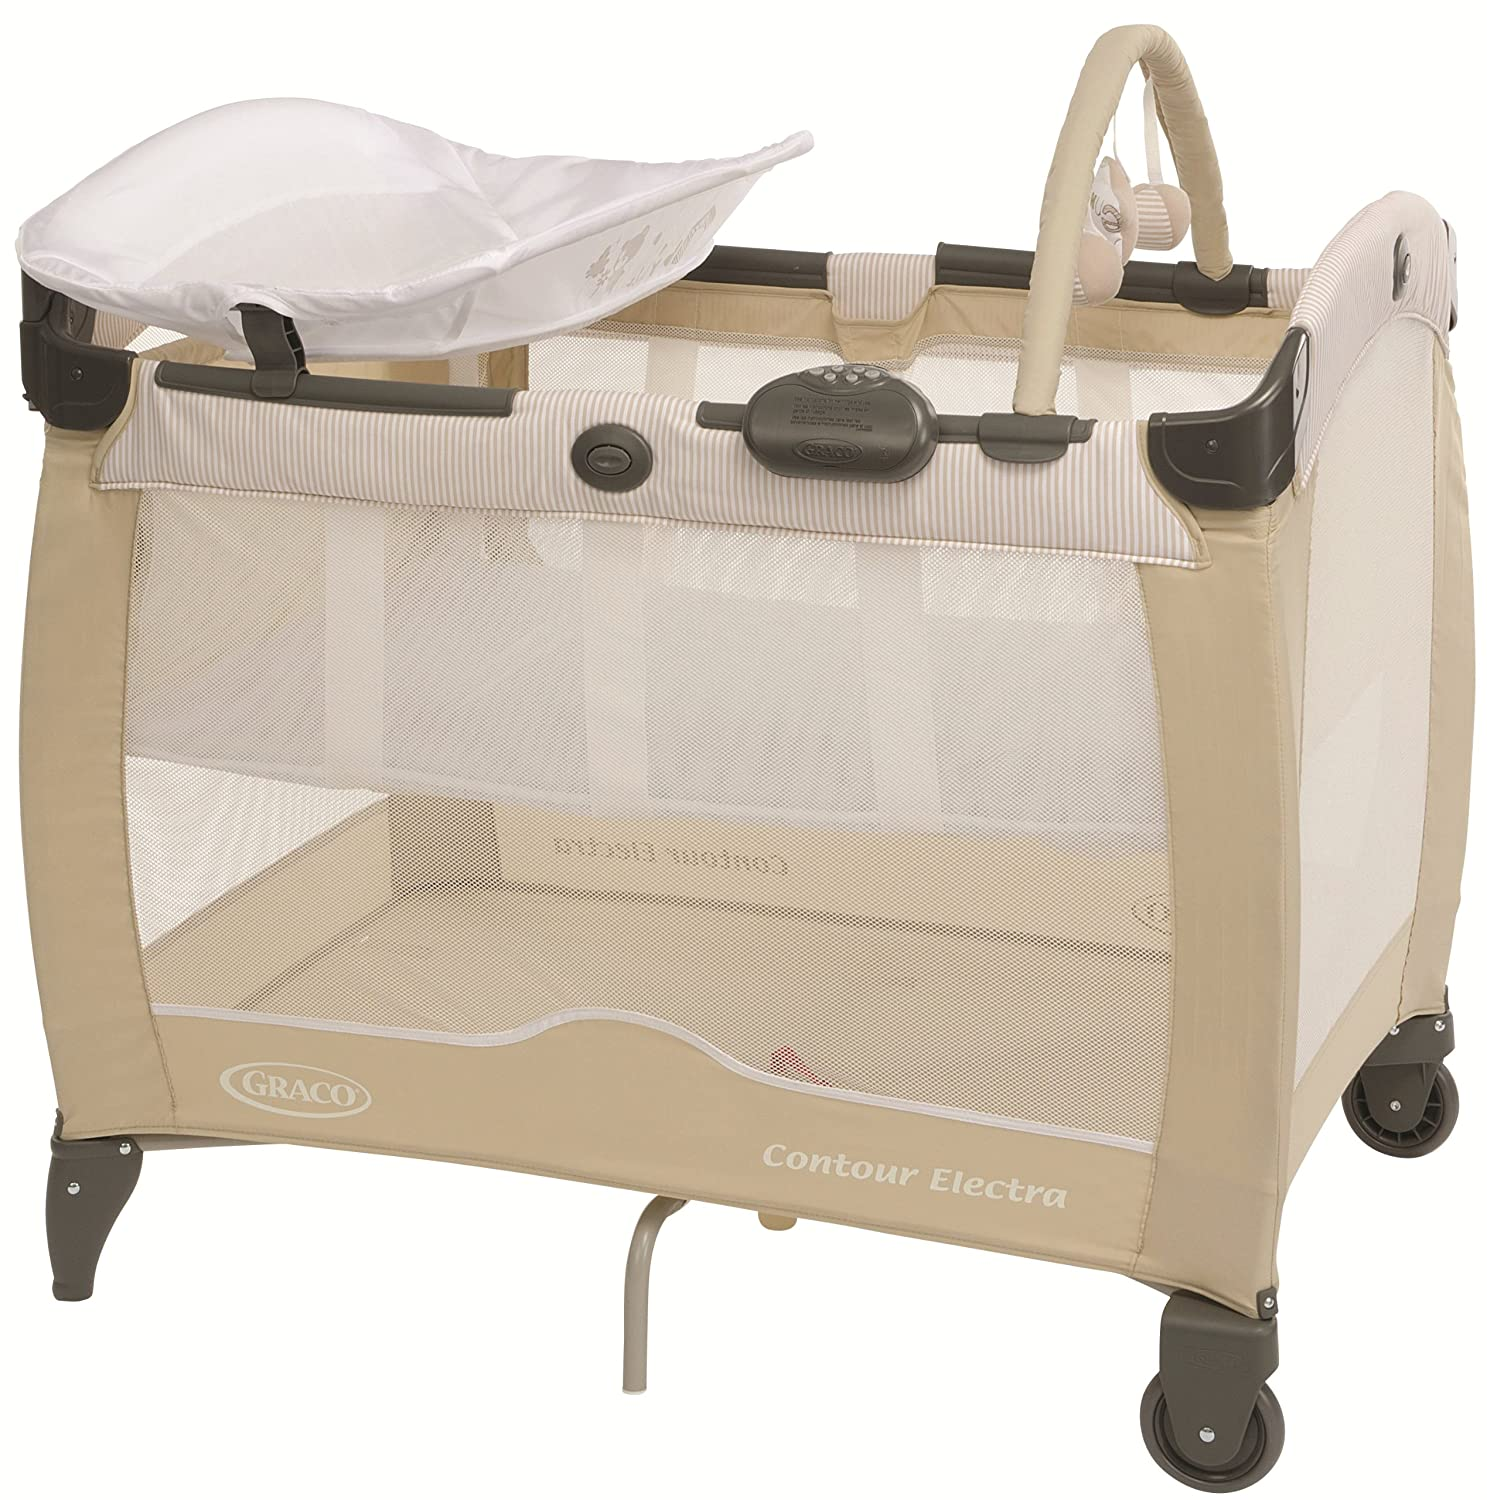 Graco Contour Electra Playard, Woodland Walk Newell Rubbermaid 1989110